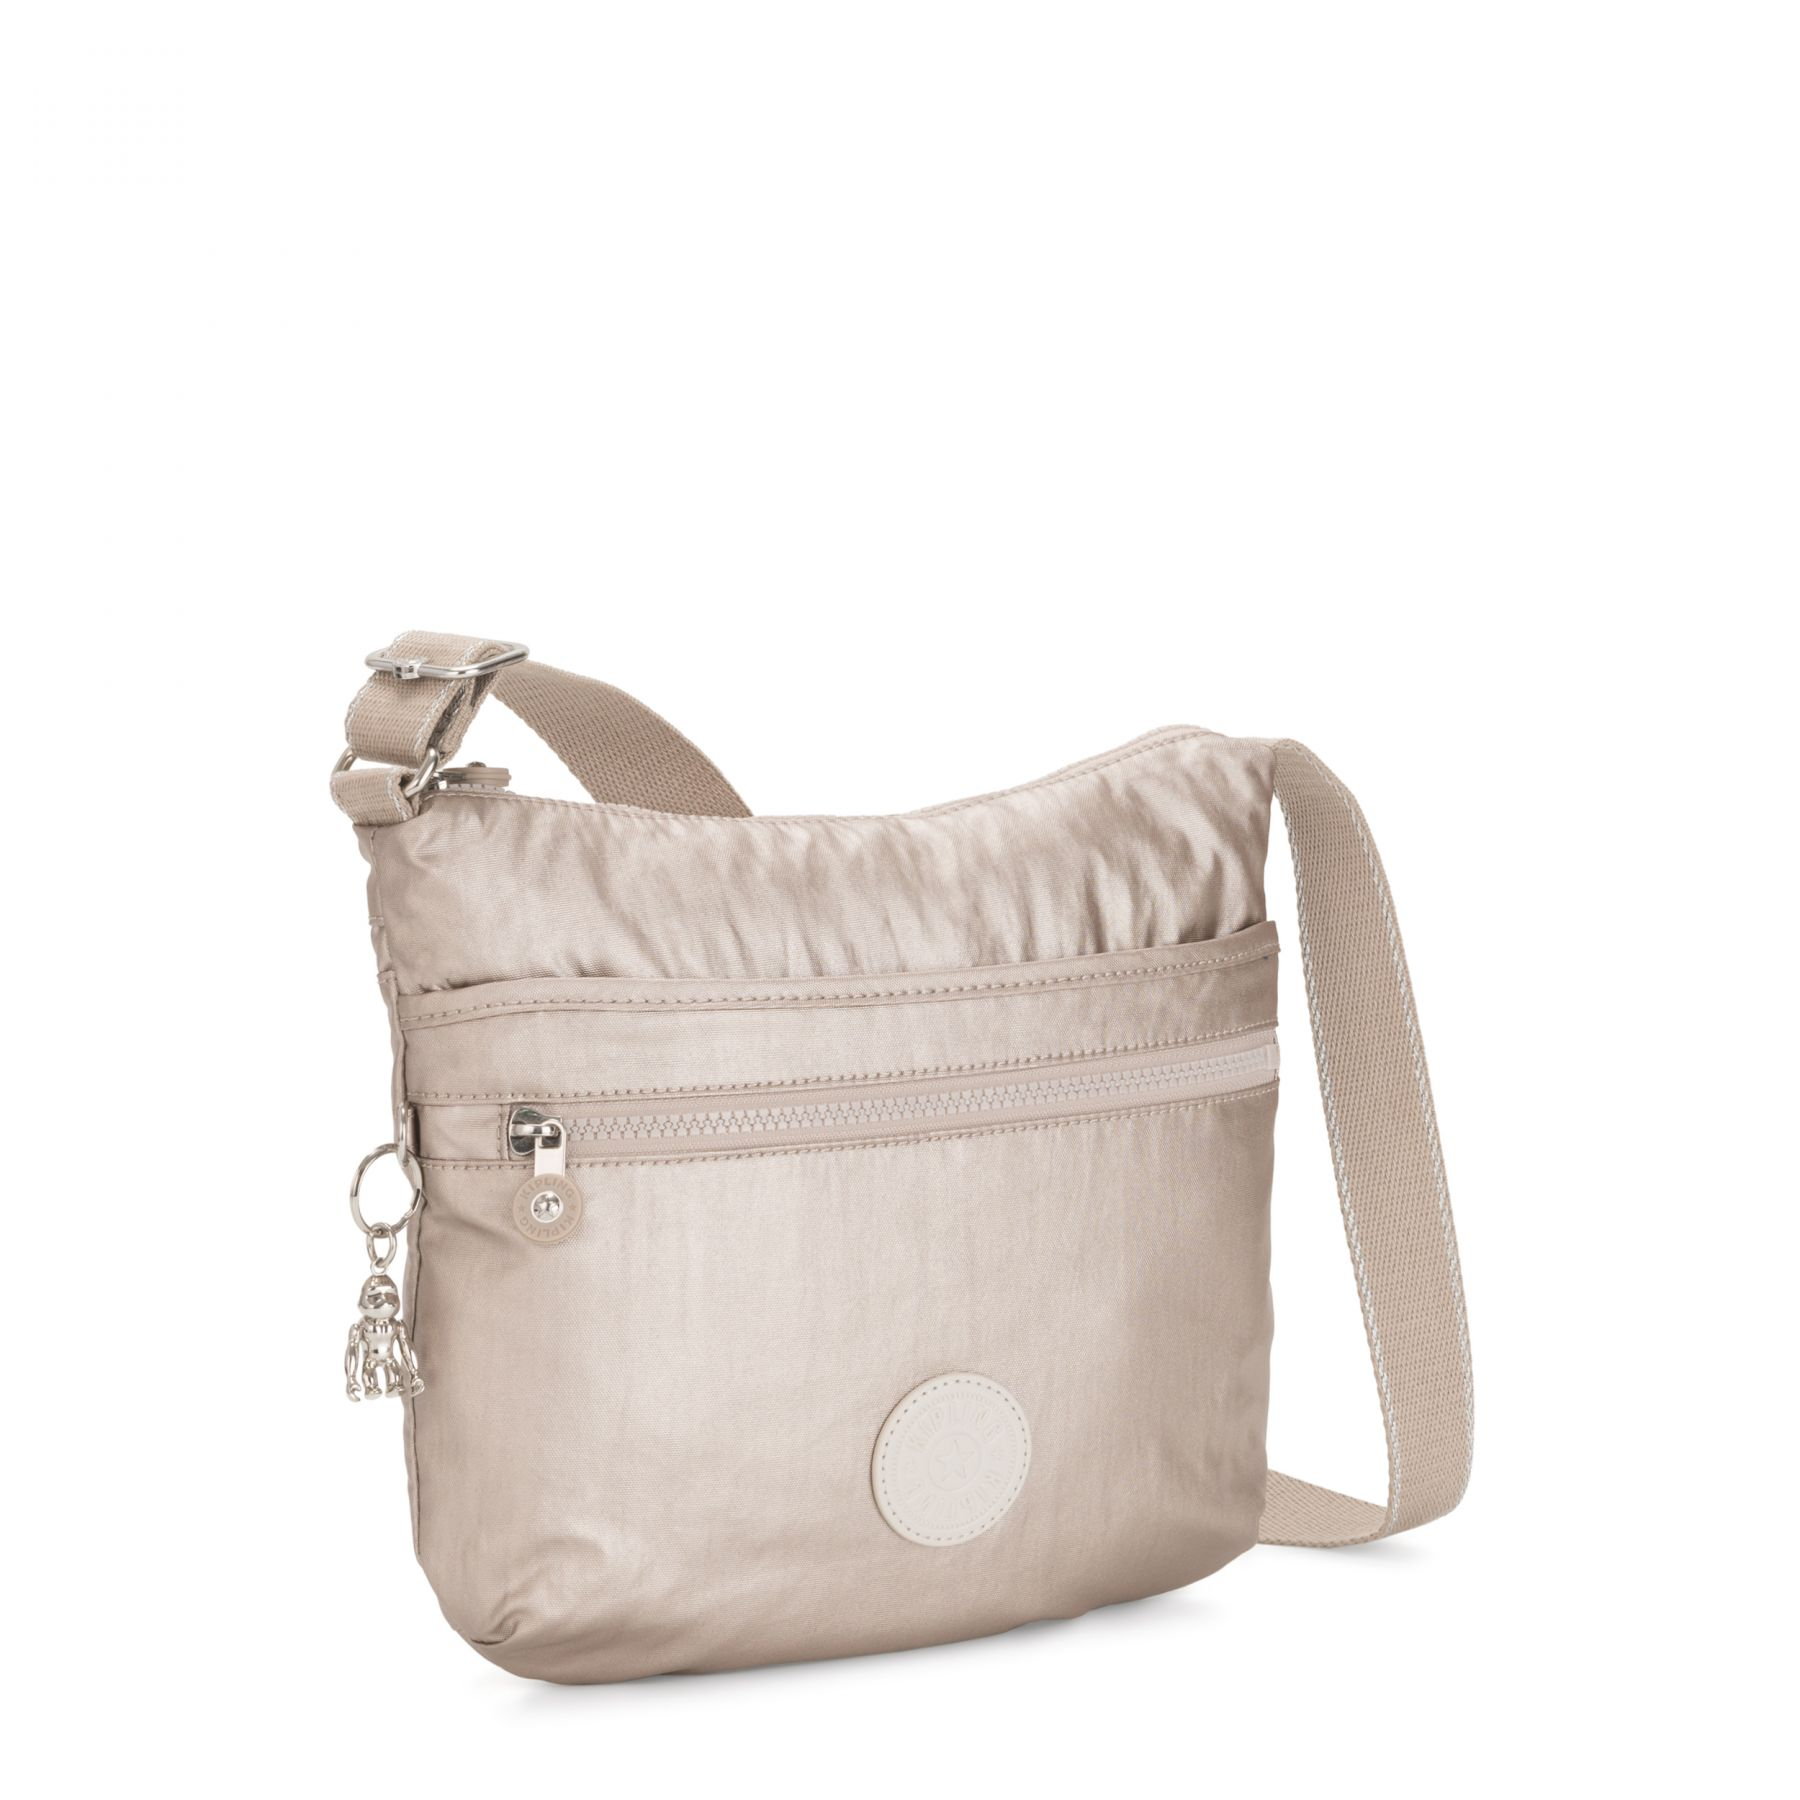 ARTO Latest Shoulder Bags by Kipling - view 4